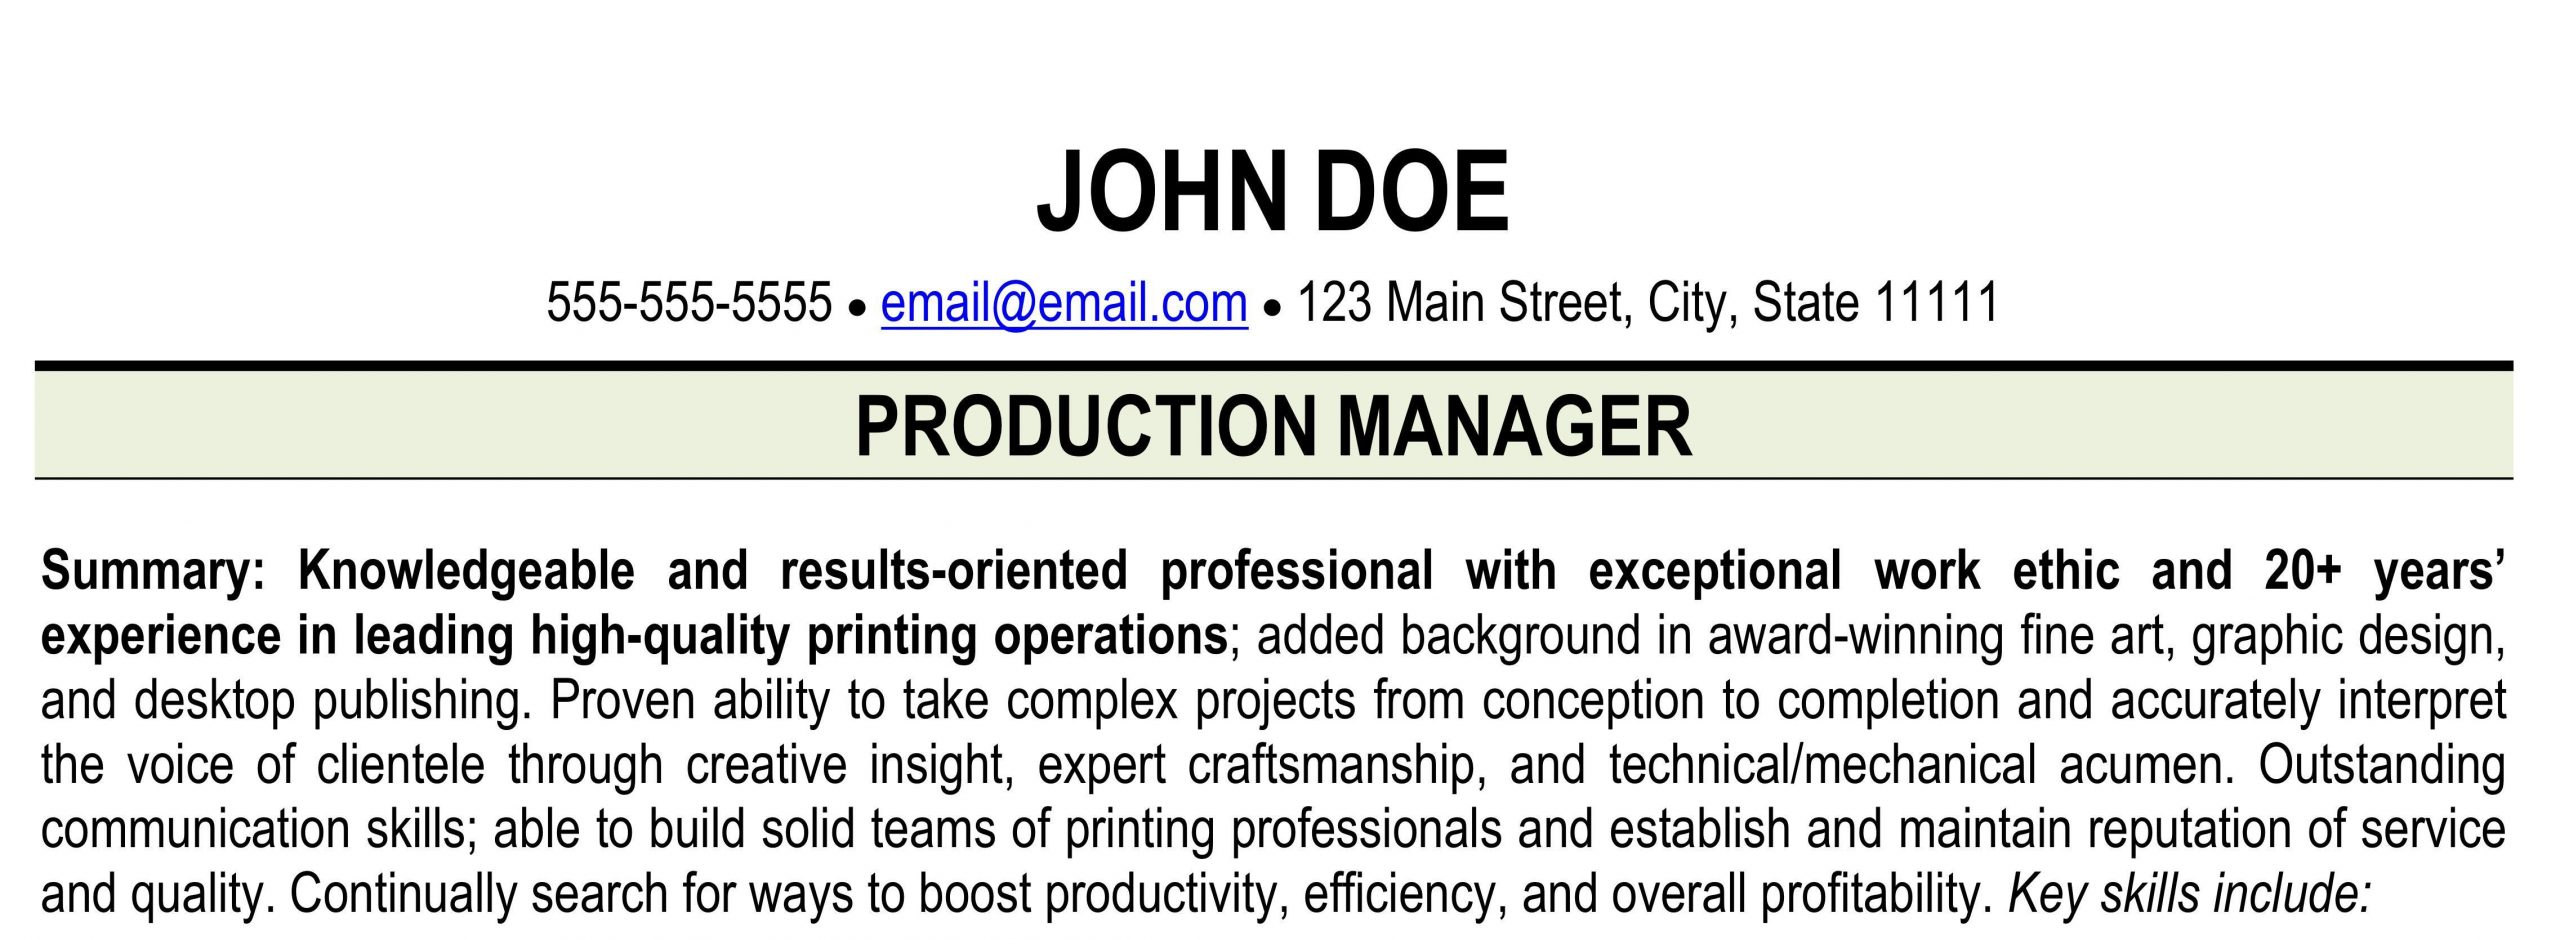 Sample Resume for Print Production Manager Resume for Printing Industry – Print Shop Resume Ihireprinting